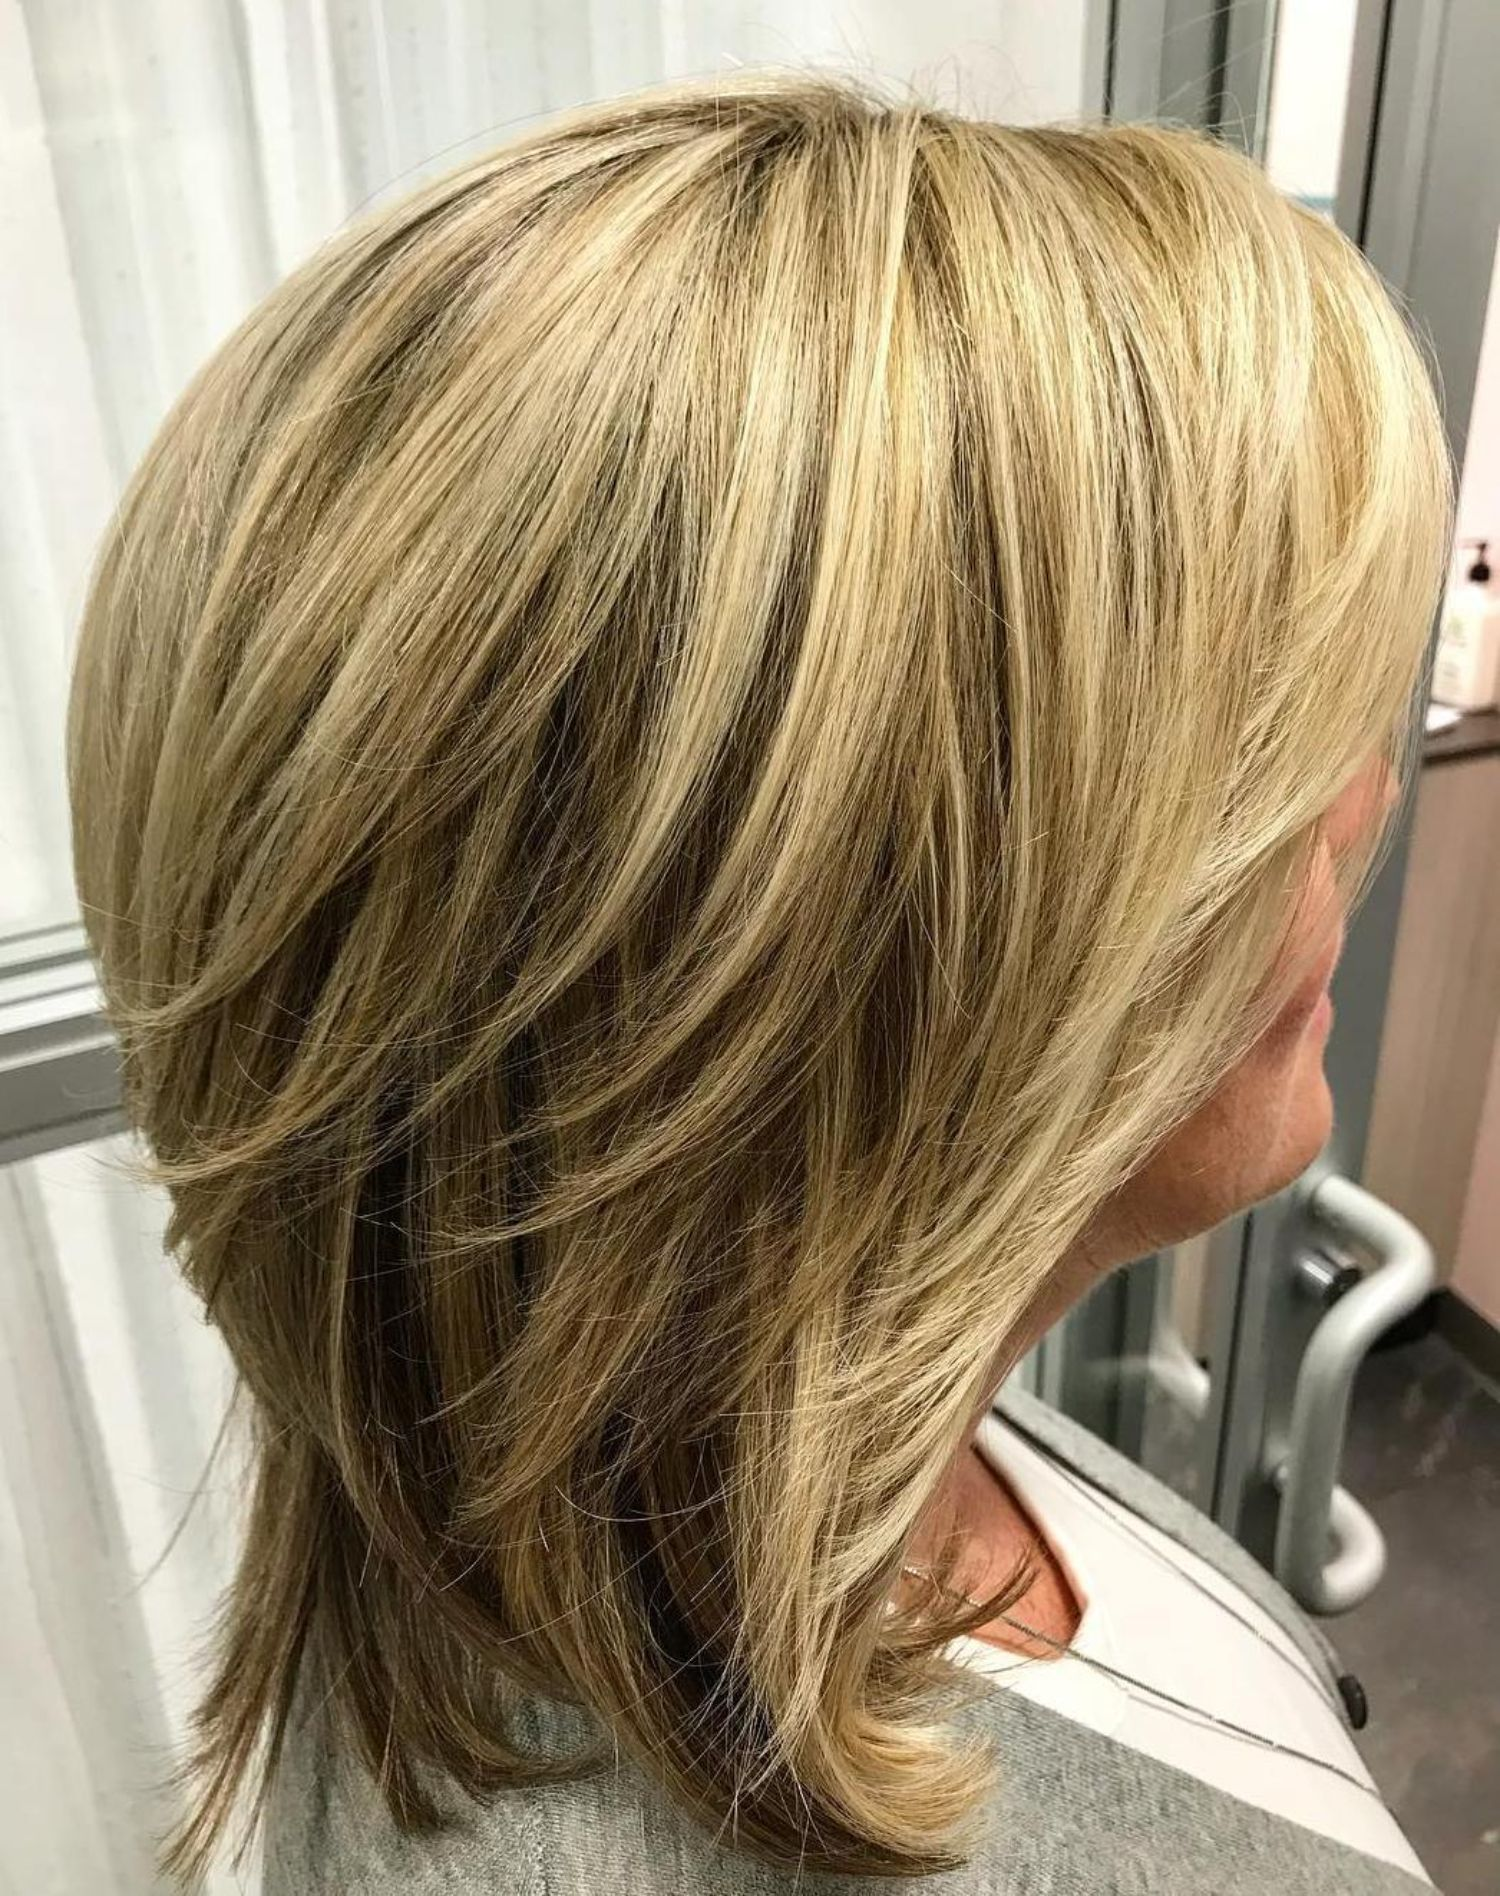 Shoulder Length Layered Blonde Hairstyle Hair Styles Modern Hairstyles Medium Hair Styles For Women